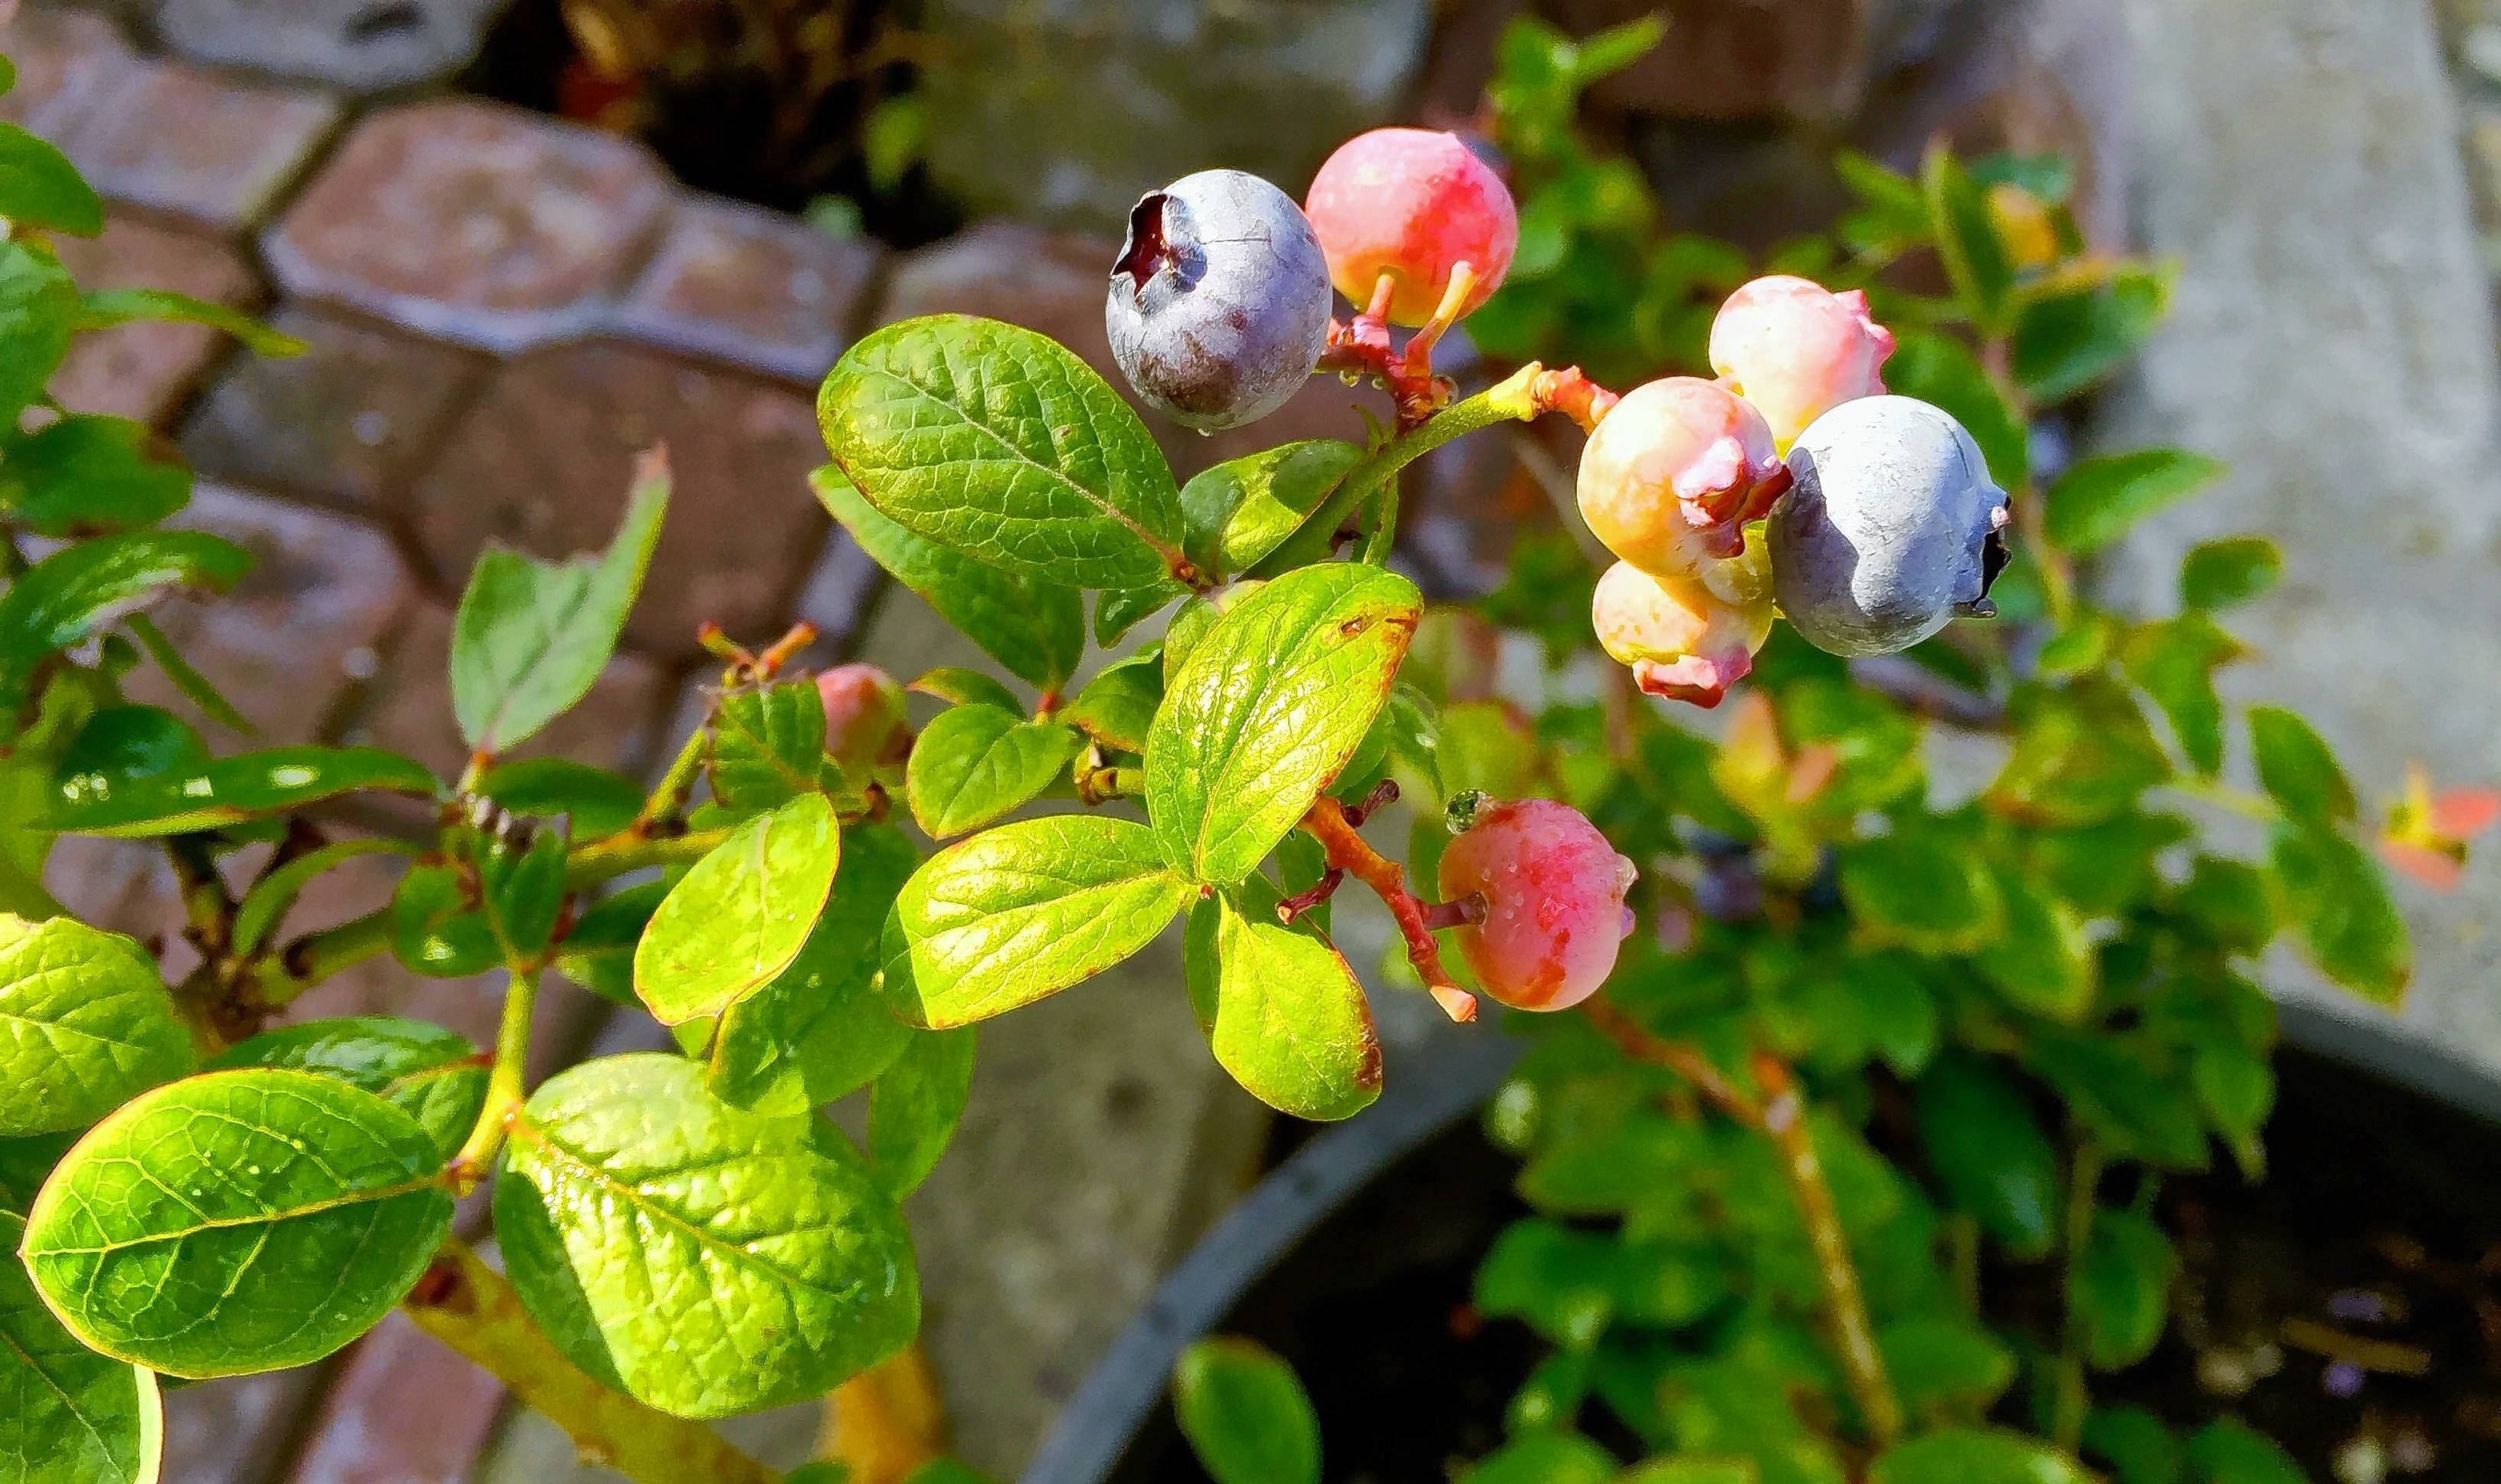 Blueberries grow in a pot on a patio garden. Plant breeders are introducing everything from shrubs and trees to flowering perennials that remain compact when planted in the garden. They look great in containers, too.